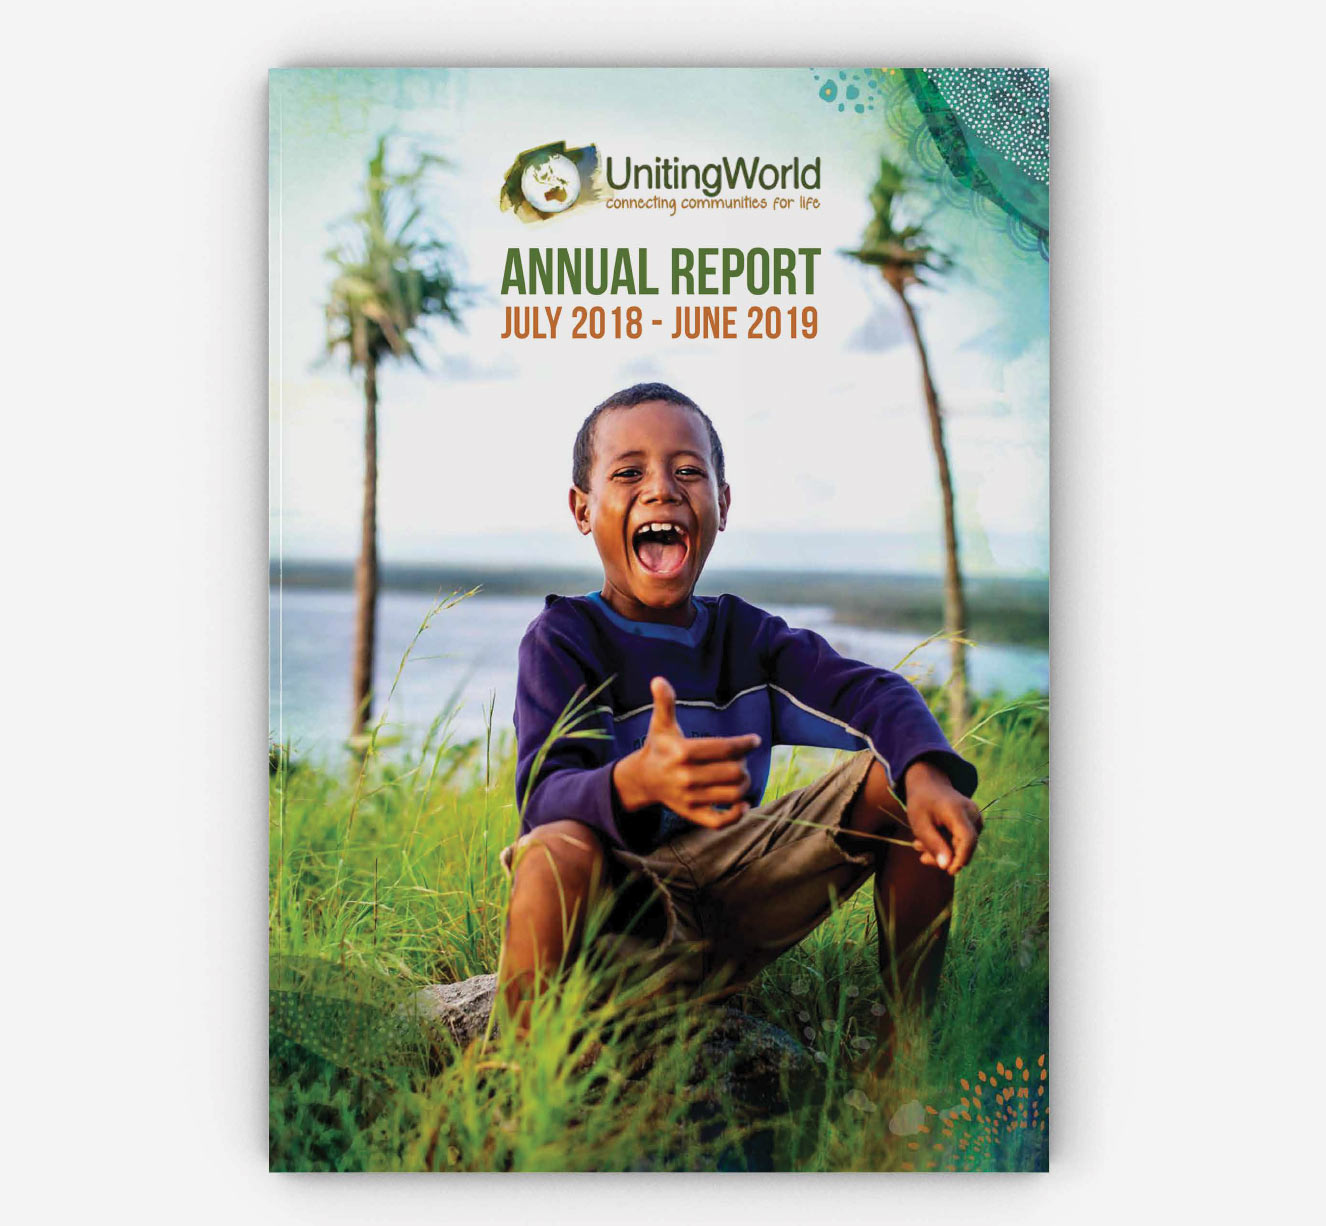 Annual Report design for Uniting World